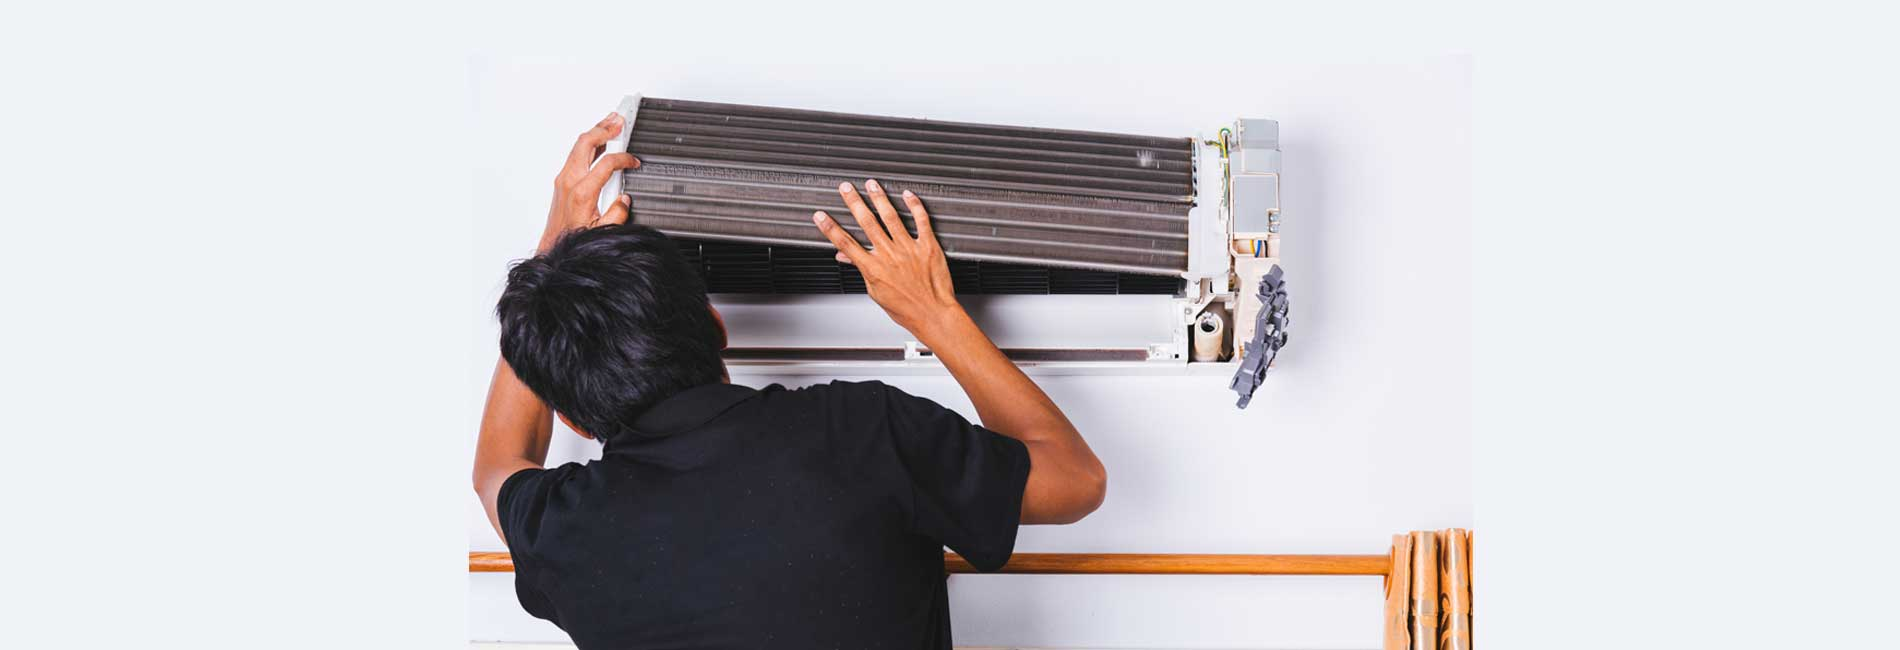 Panasonic AC Uninstallation and Installation in Padur